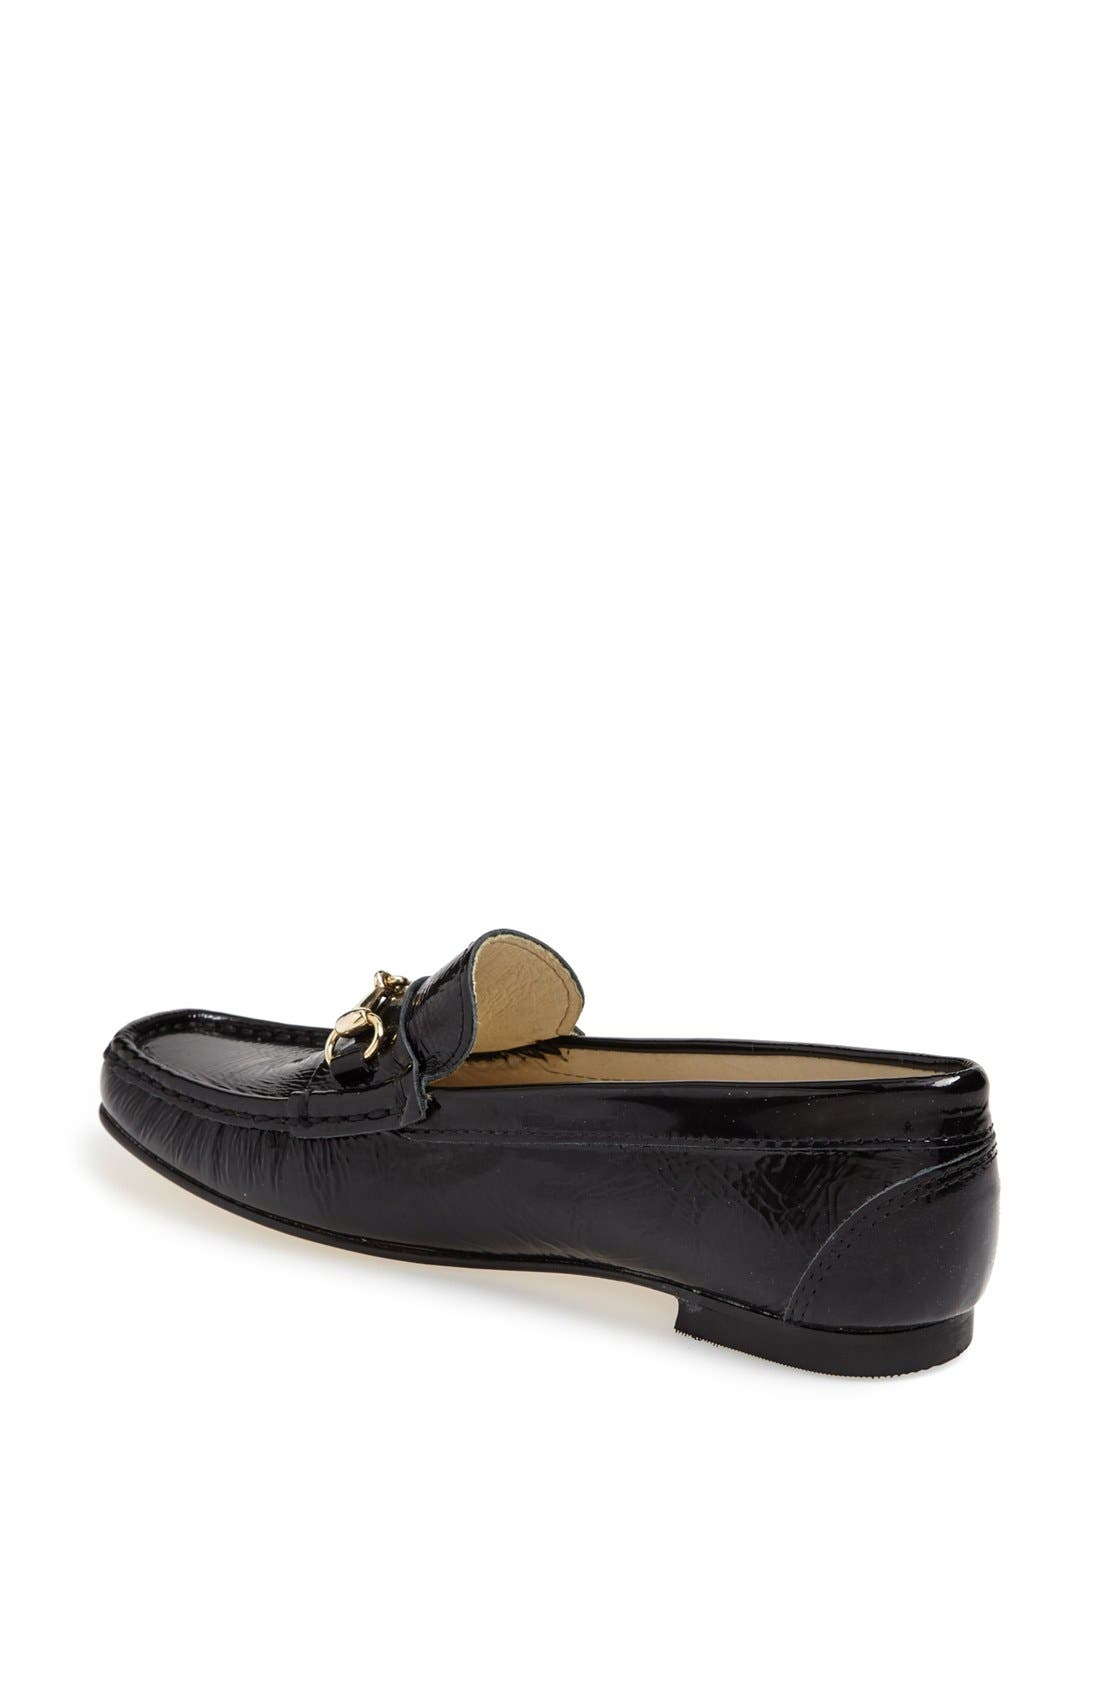 Alternate Image 2  - French Sole 'Lecture' Patent Leather Flat